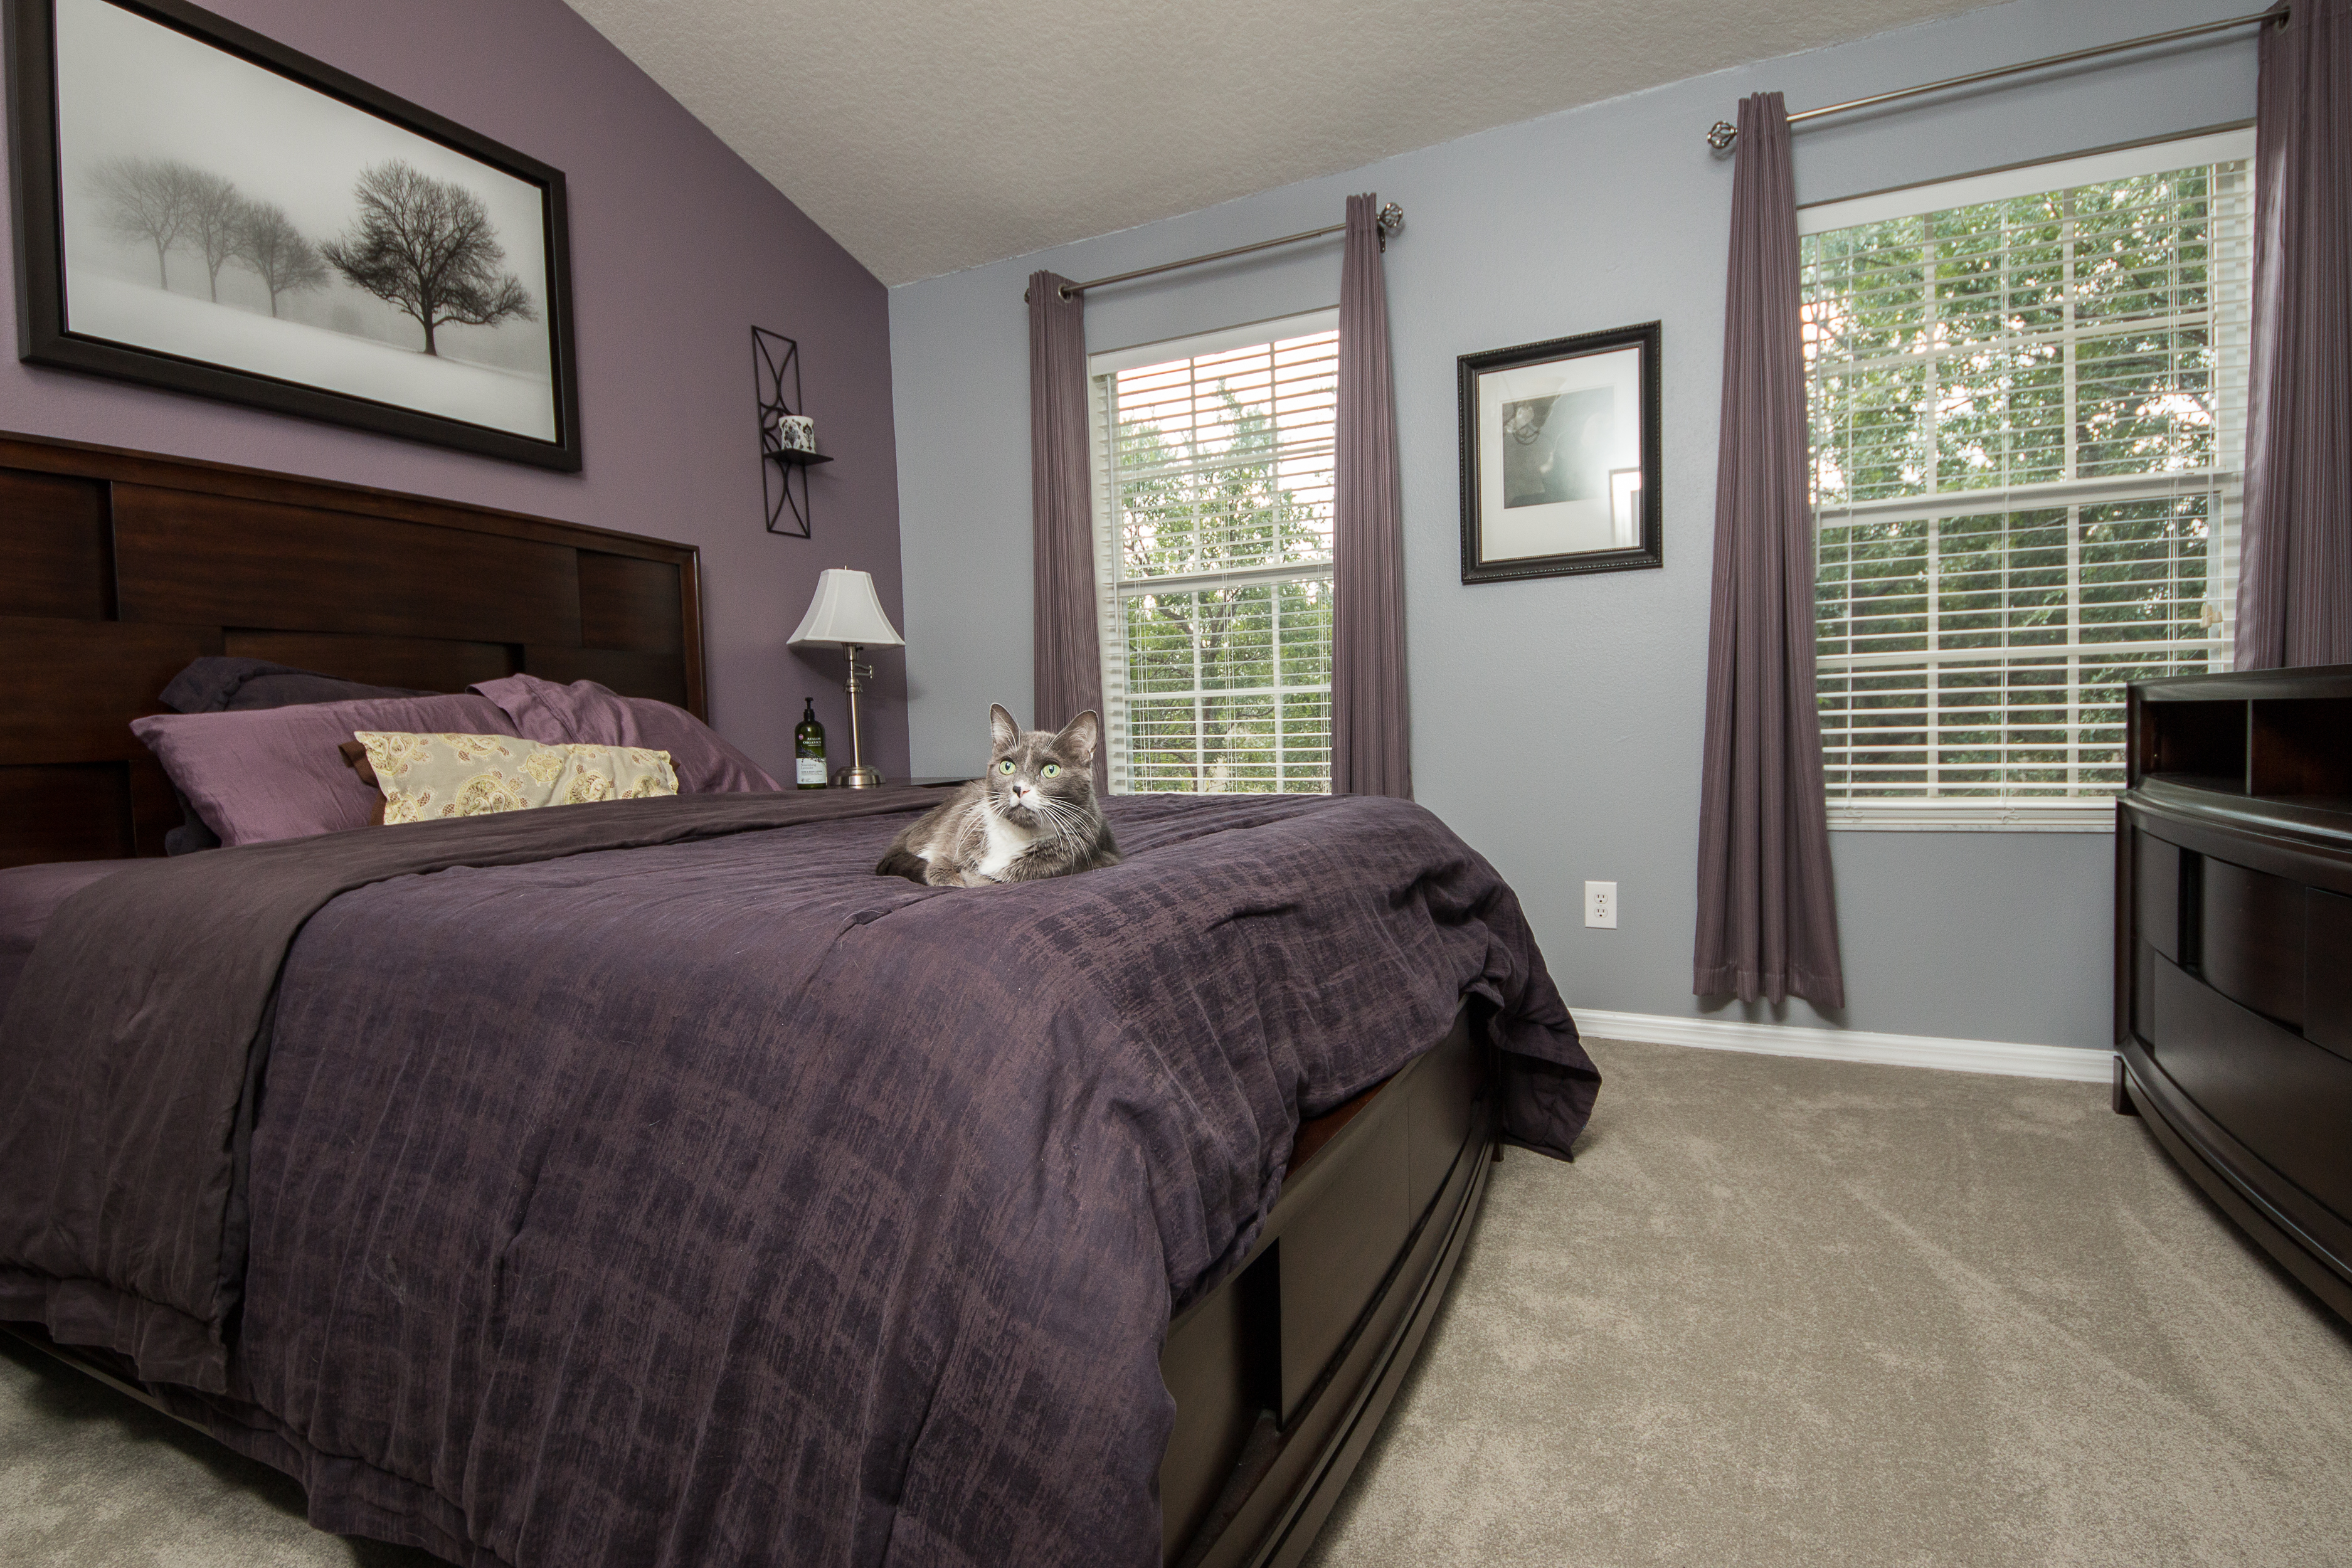 Pvc Vinyl Gray Carpet Flooring Master Bedroom Ability Wood Flooring